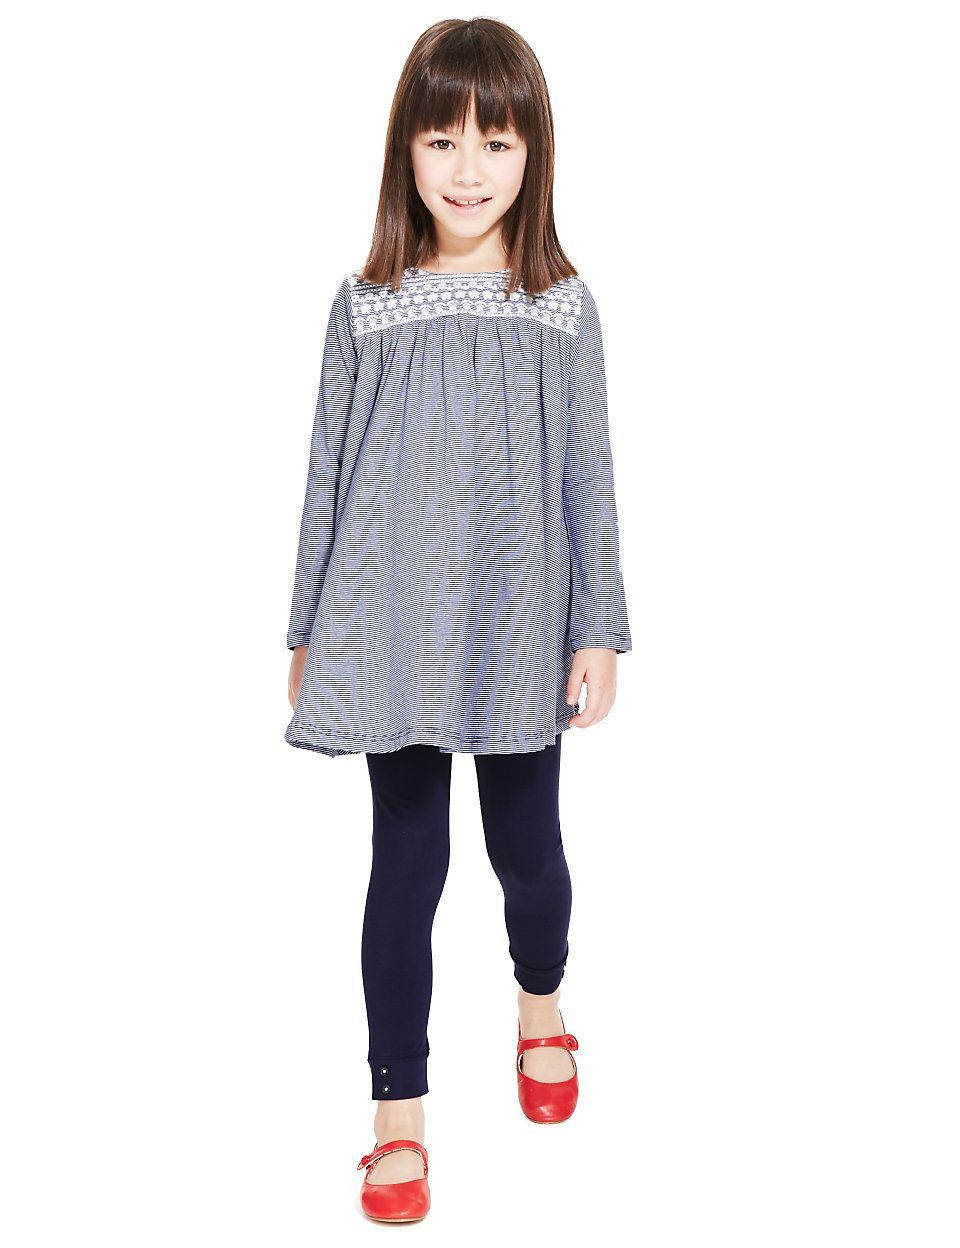 5ffefbe608e 2 Piece Cotton Rich Striped Tunic Dress & Leggings Outfit with StayNE